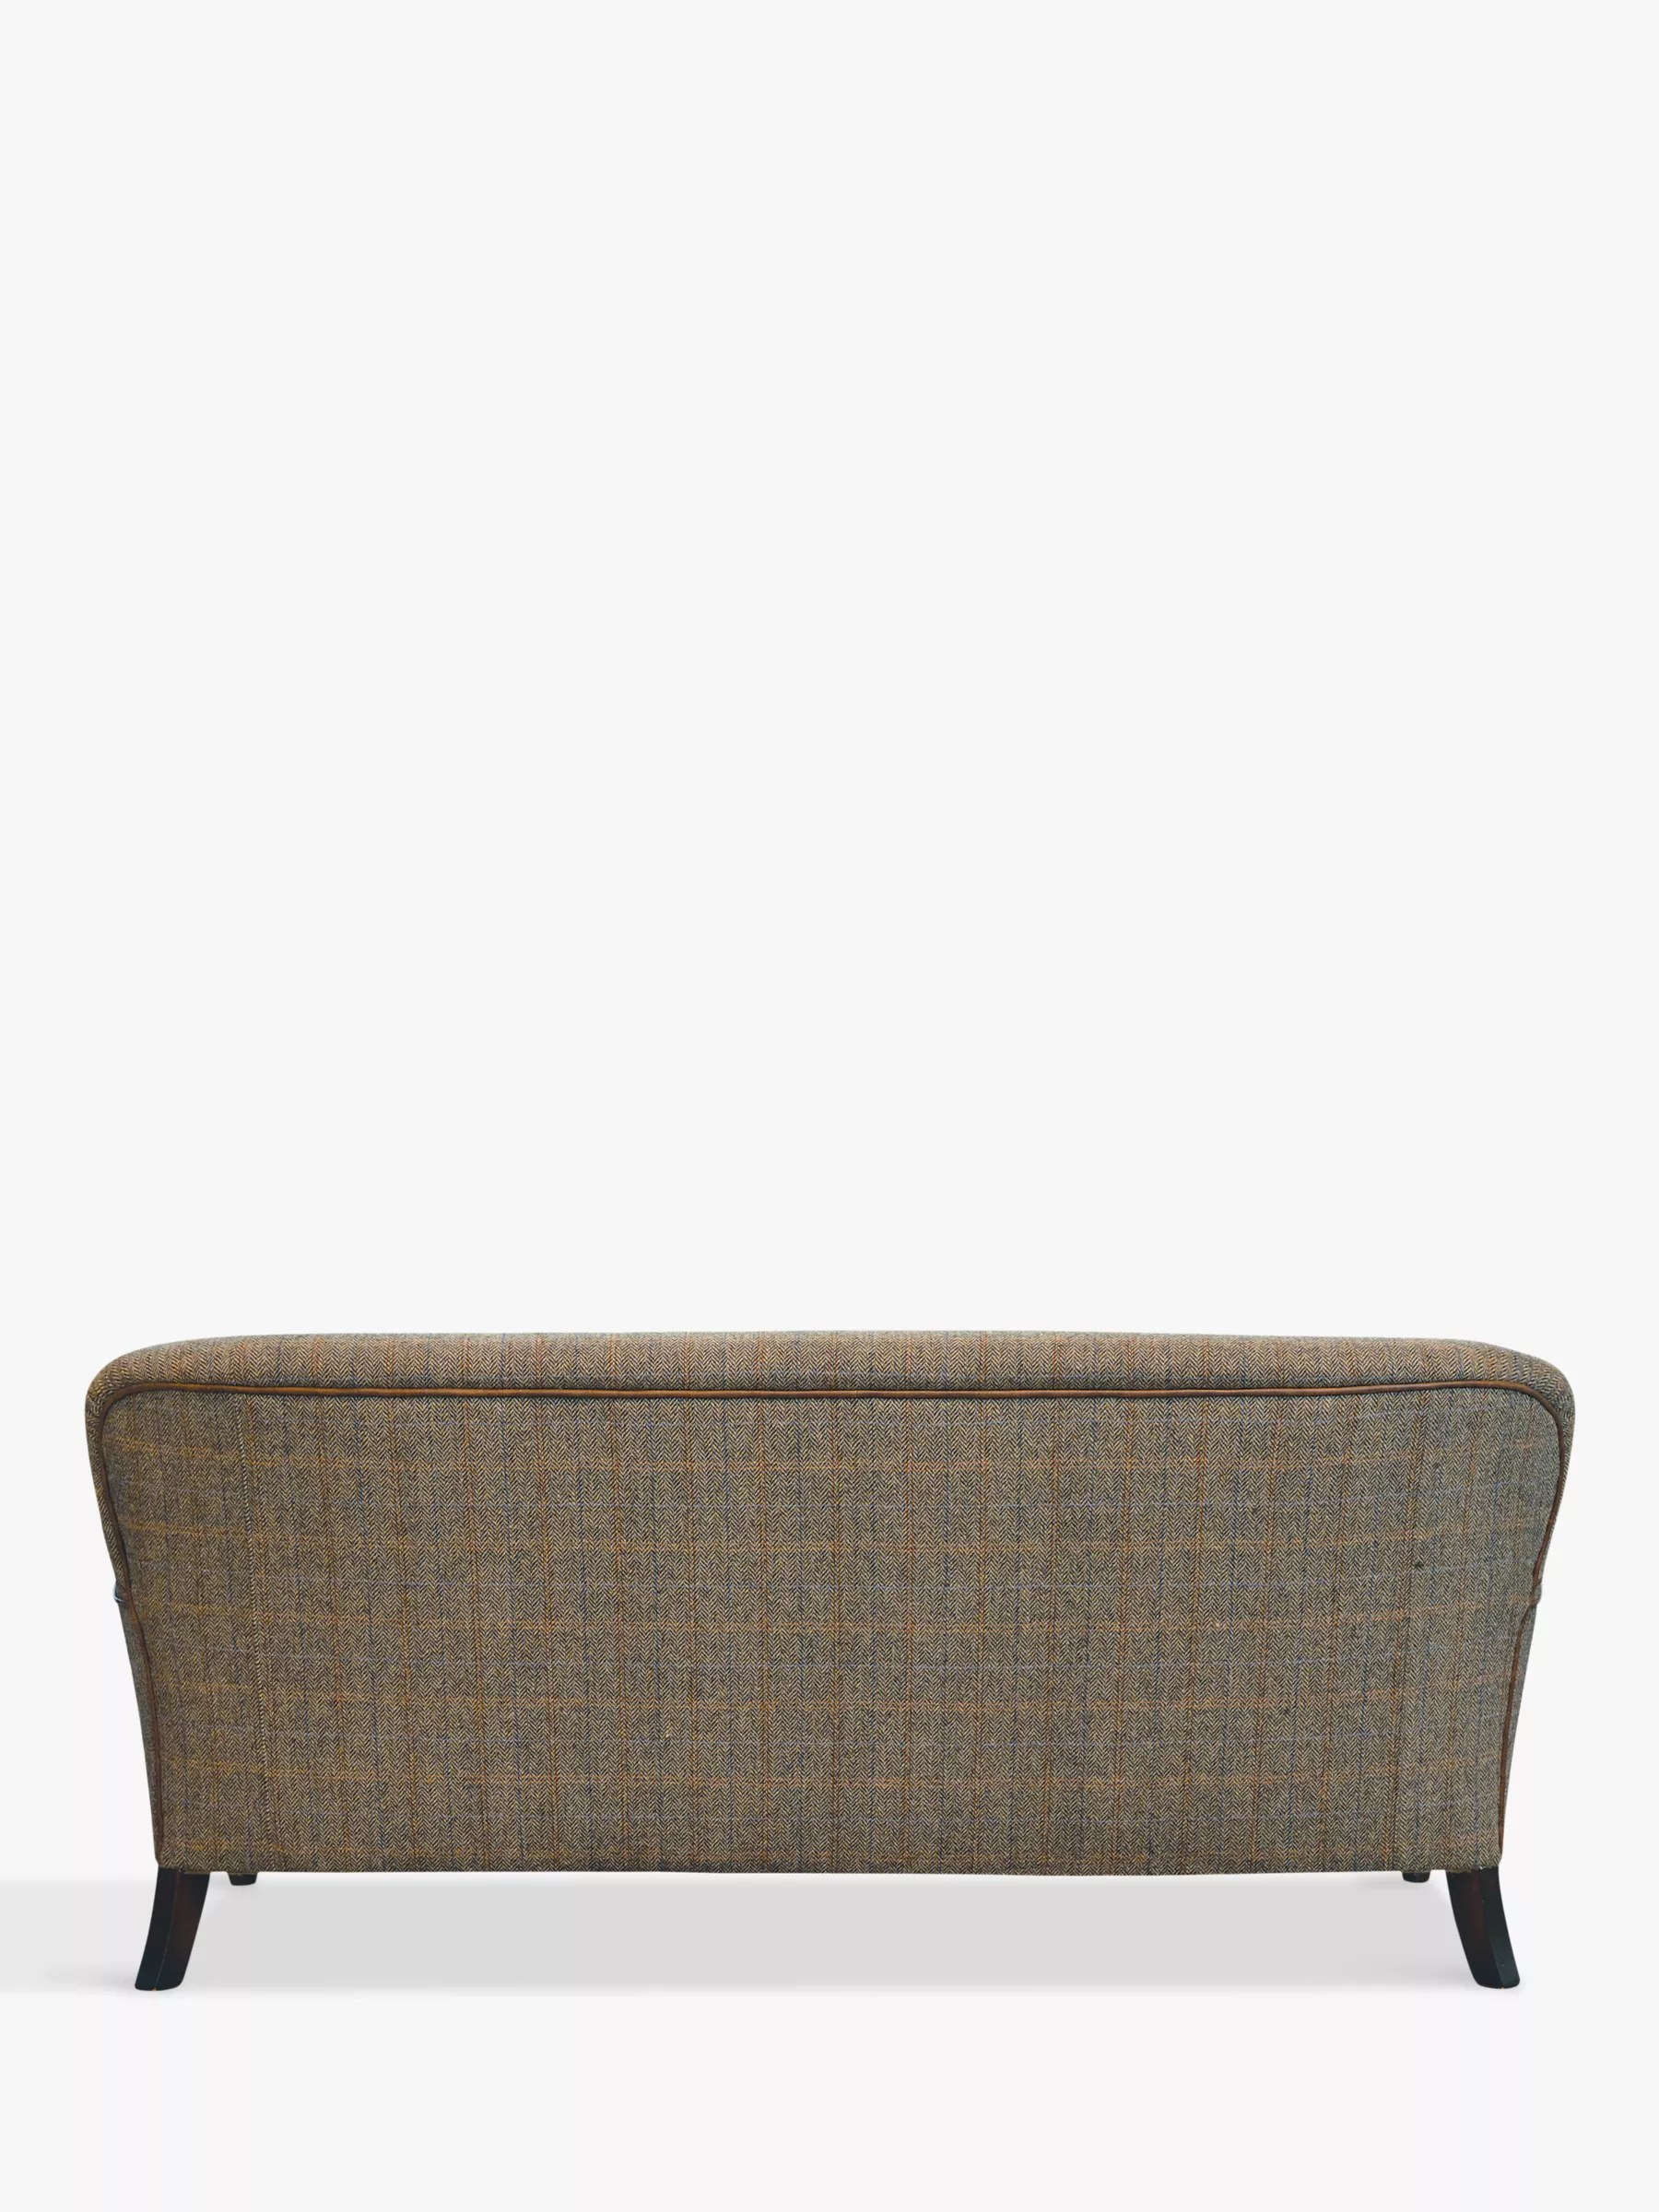 john lewis loose chair covers retro dining table and chairs uk tetrad sofa extra large with washable